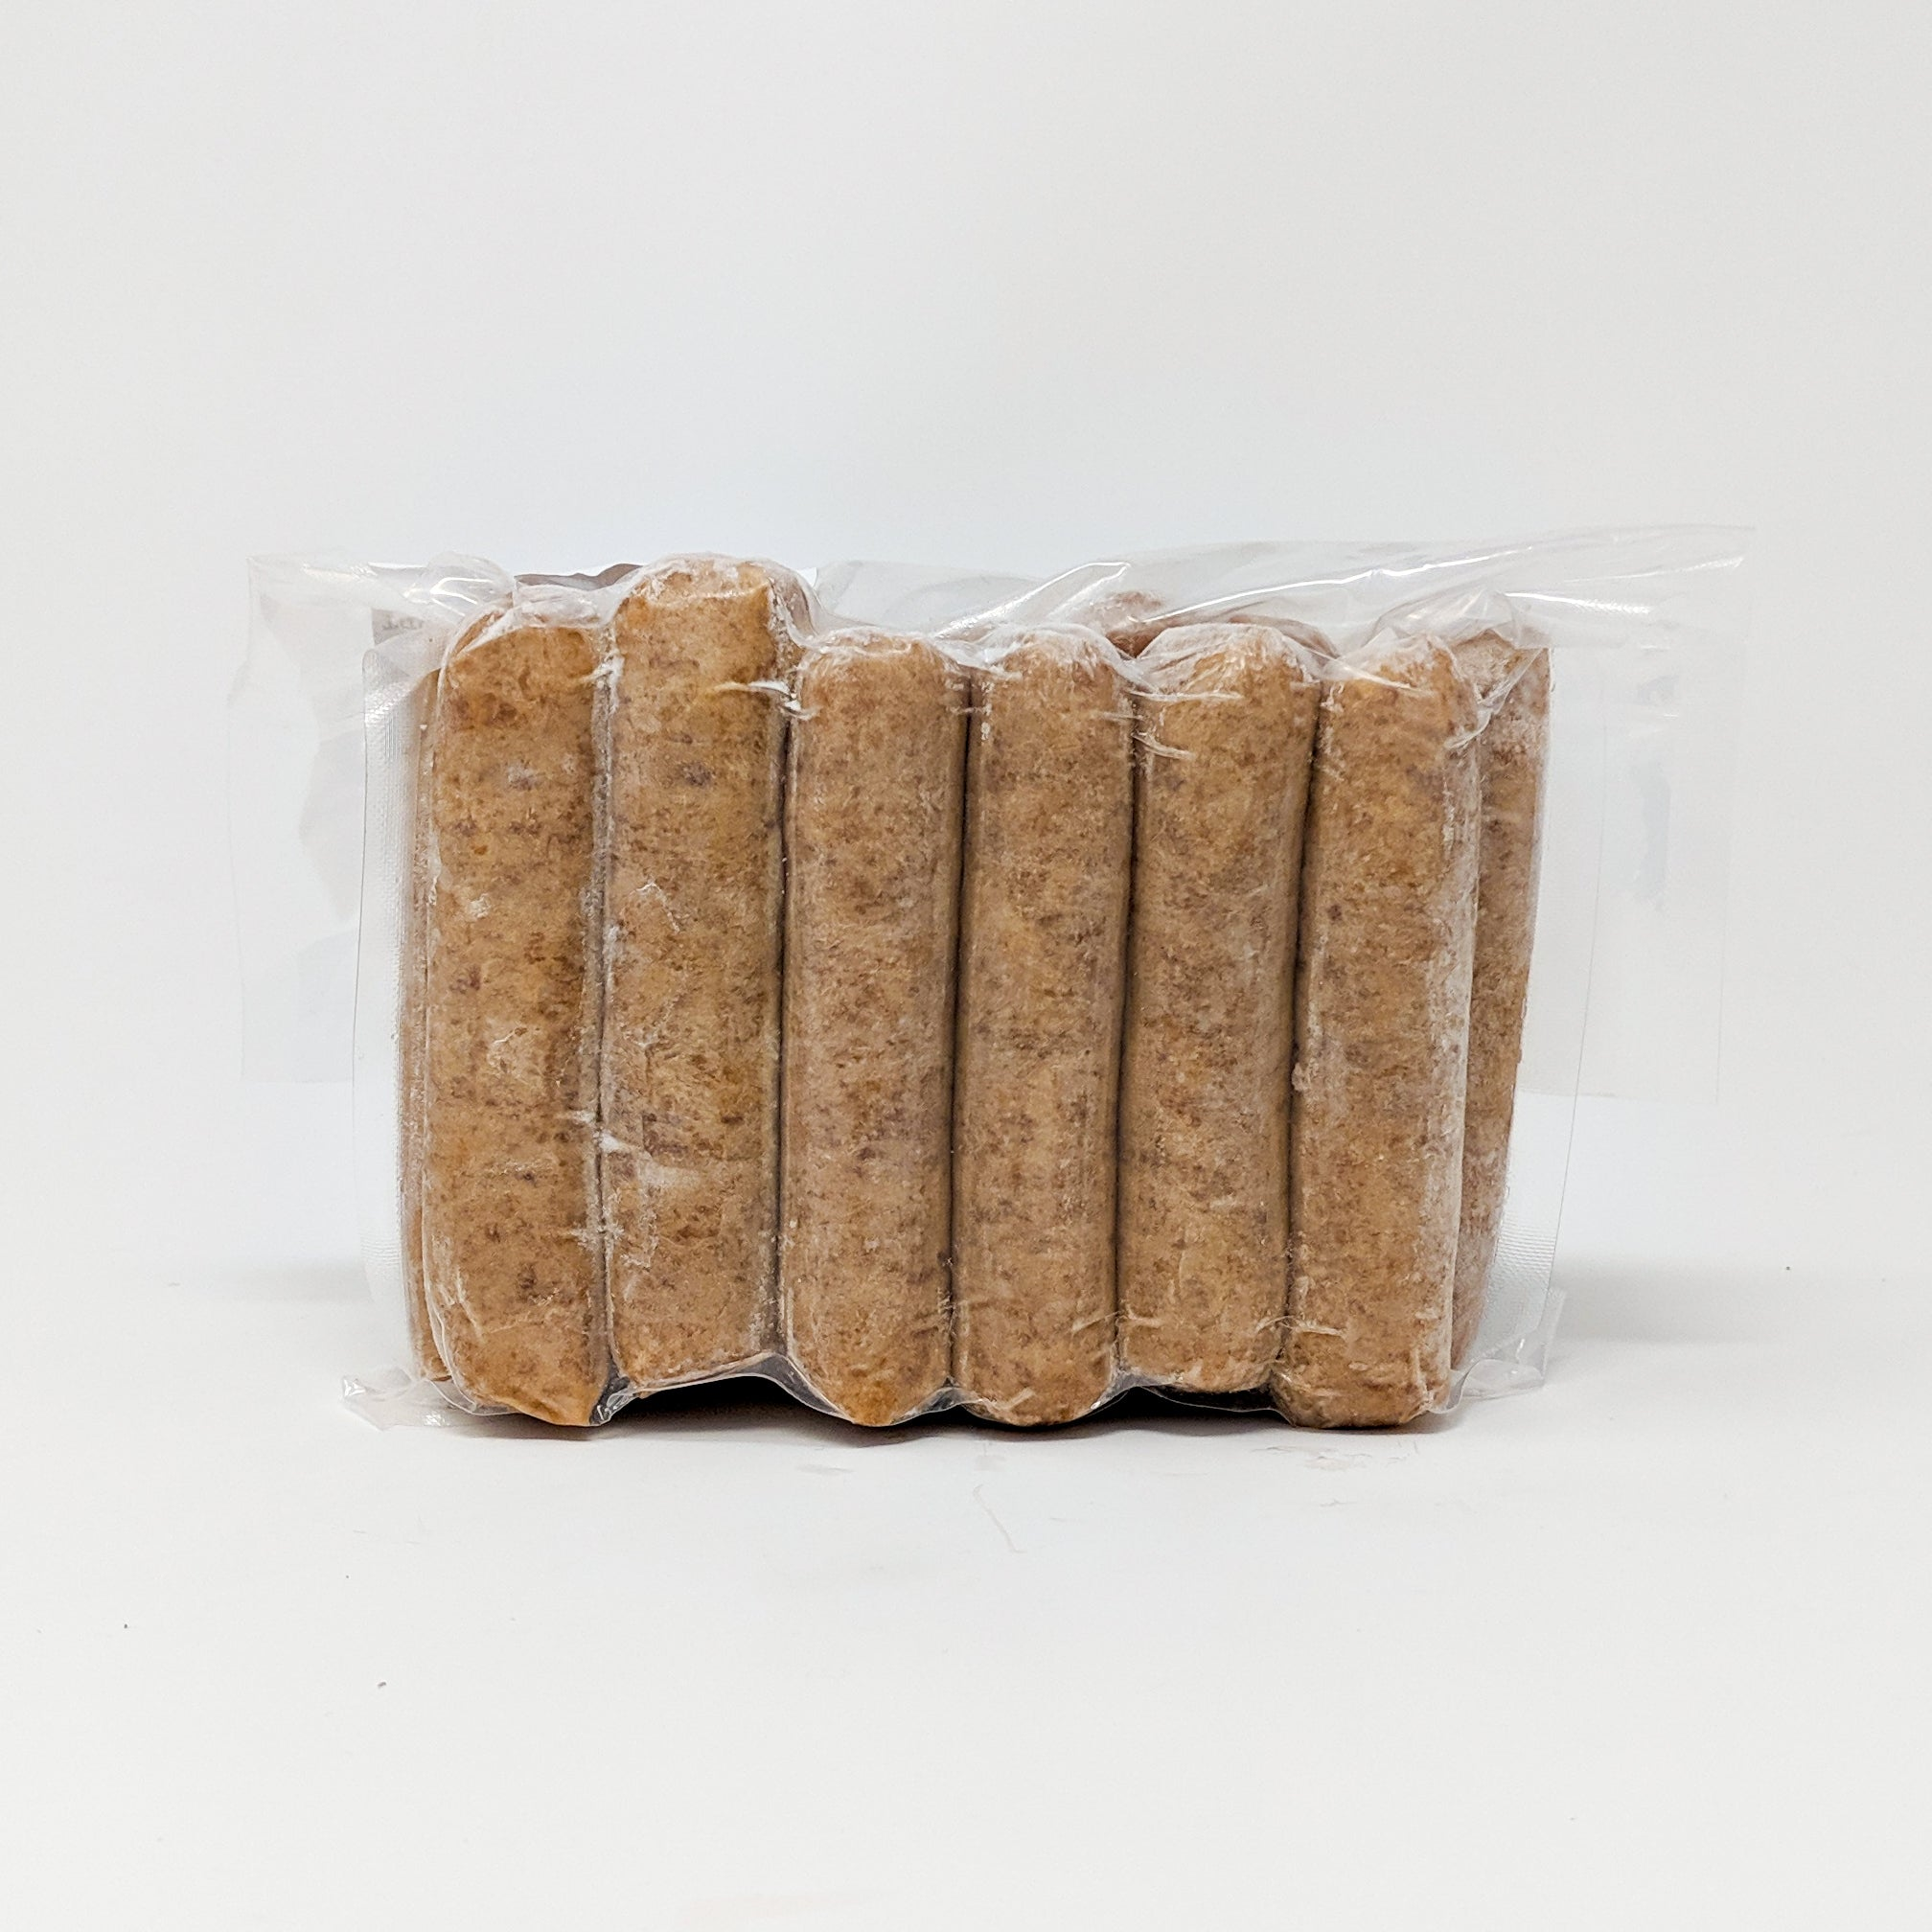 Breakfast Sausage 1lb - Pasture Raised Heritage Pork - Frozen